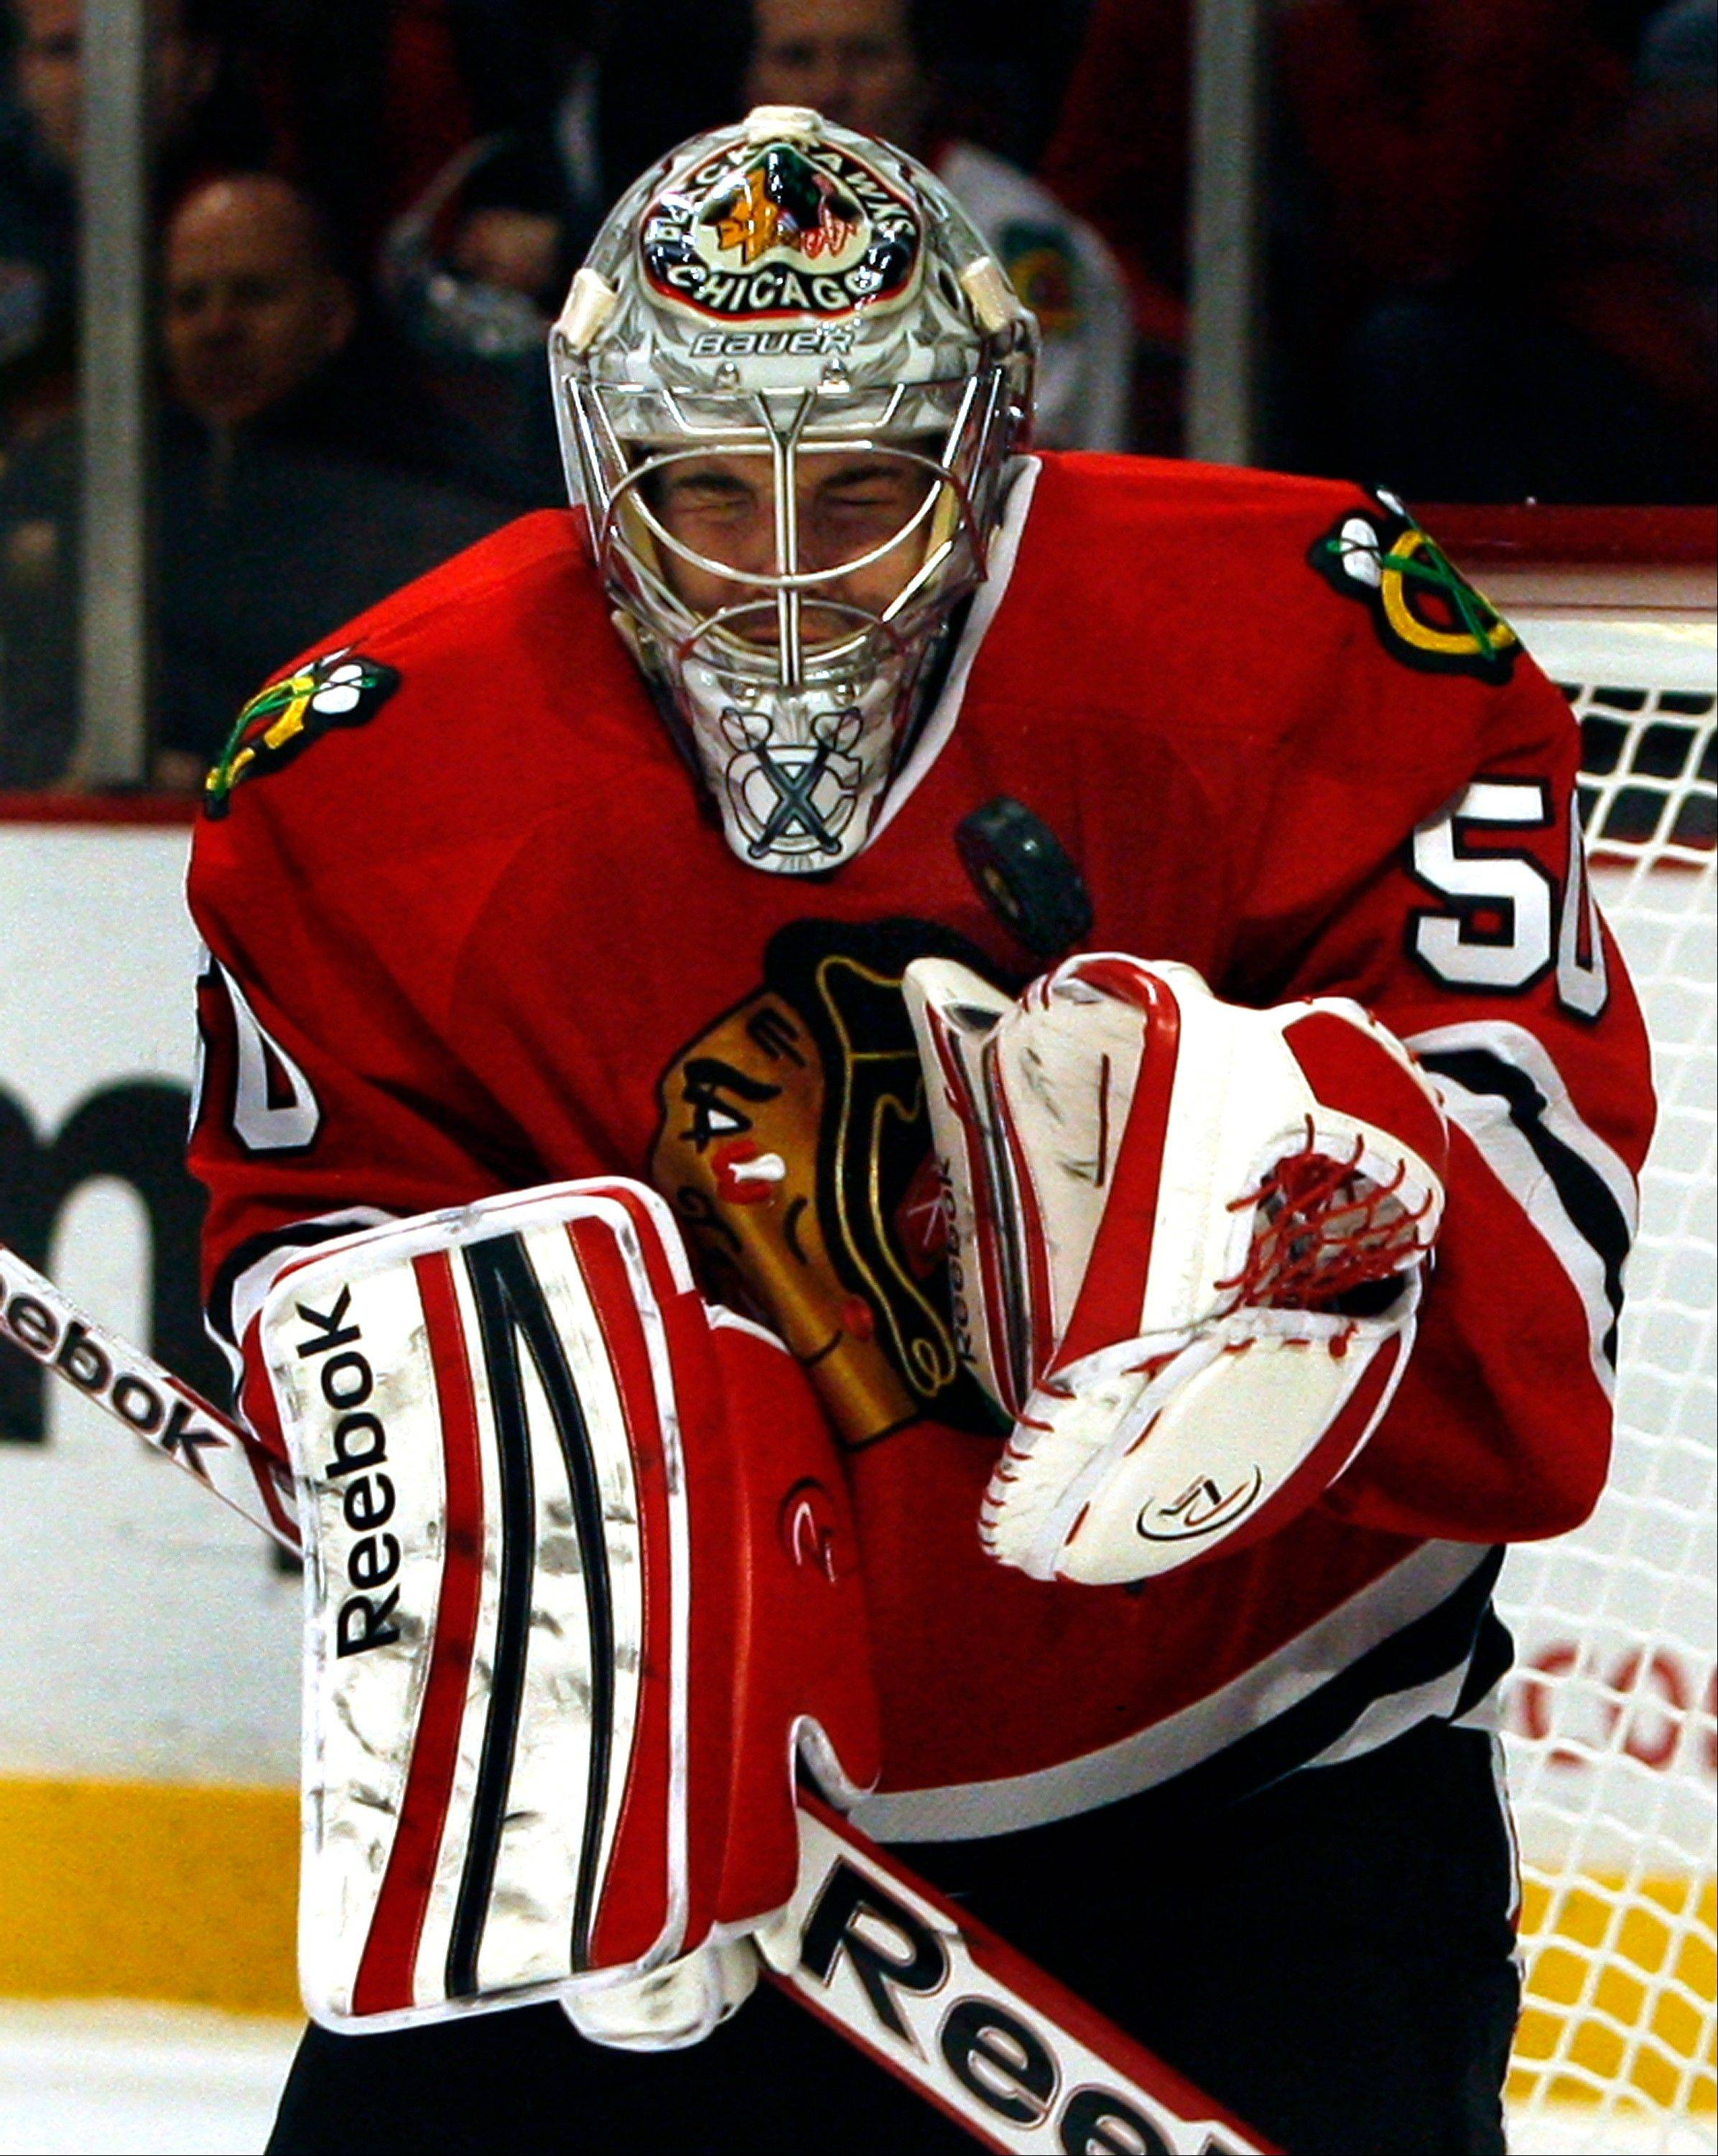 Goalie Corey Crawford and the Blackhawks might be setting all sorts of goals had this been a full NHL season.